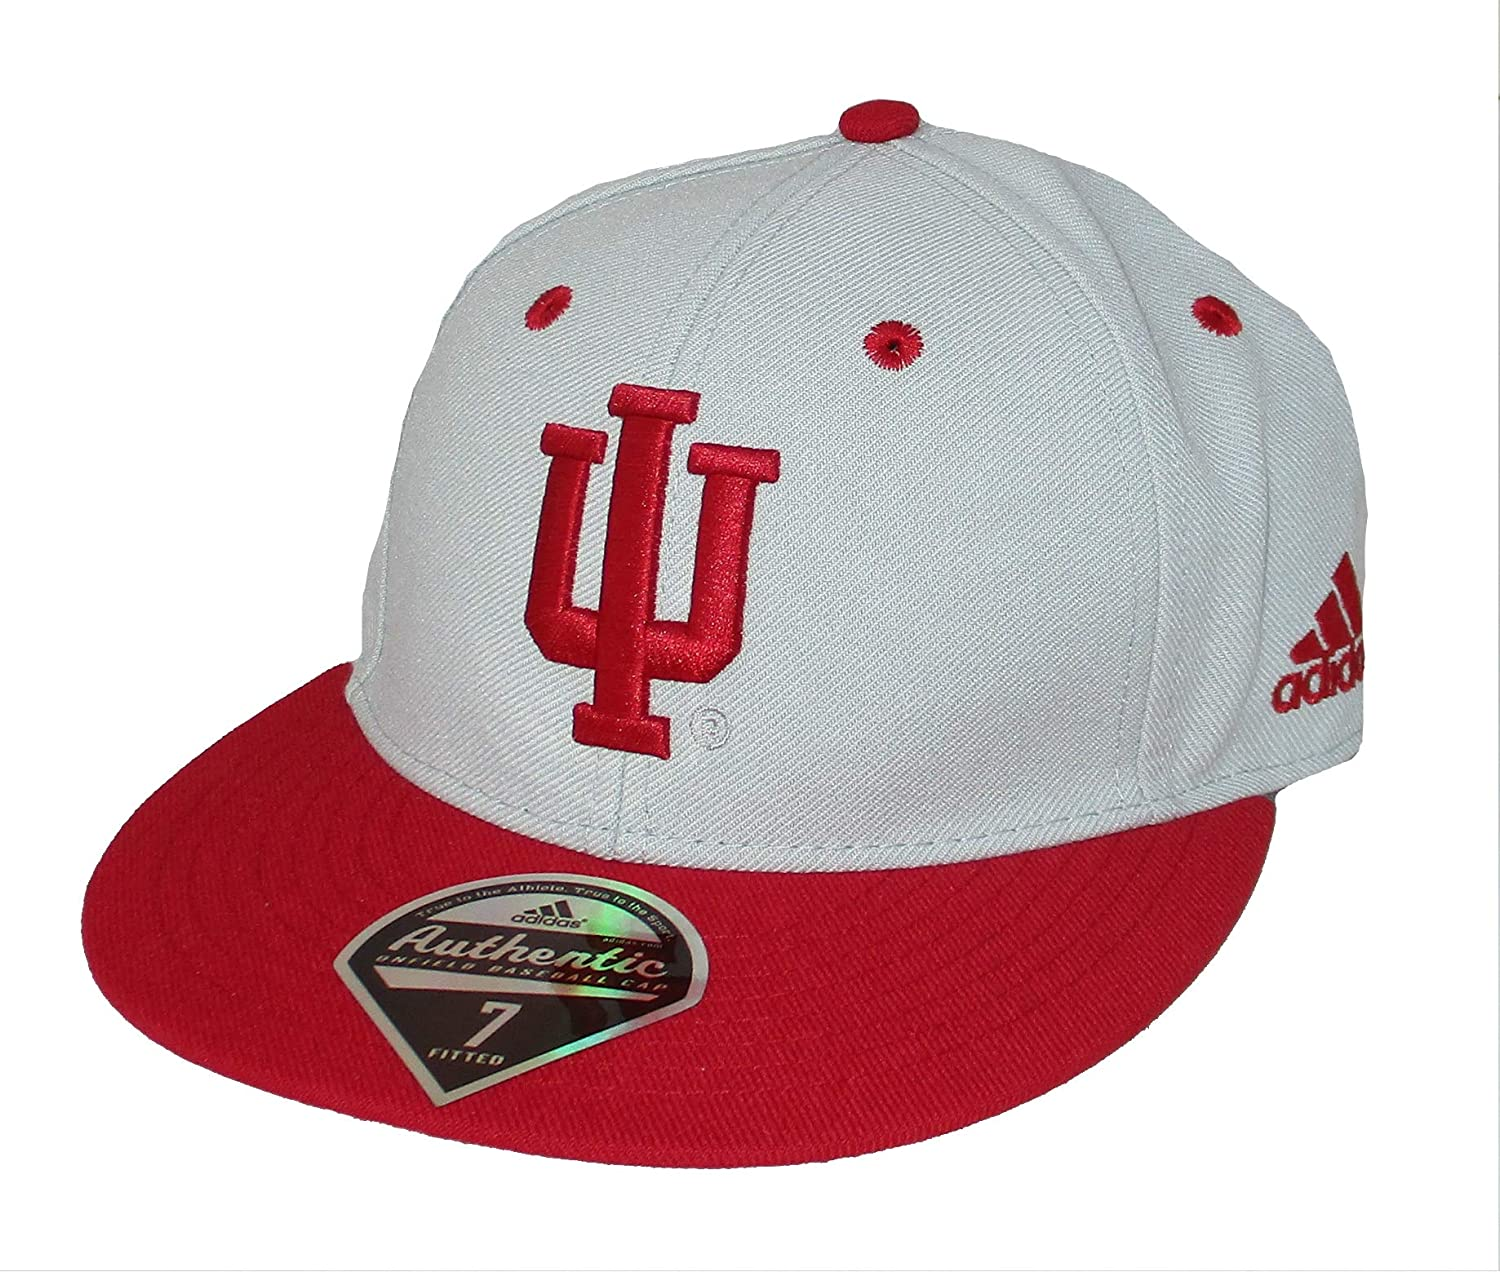 2c18b1cec7b914 ... free shipping amazon adidas indiana hoosiers fitted size 7 on field baseball  cap hat sports outdoors